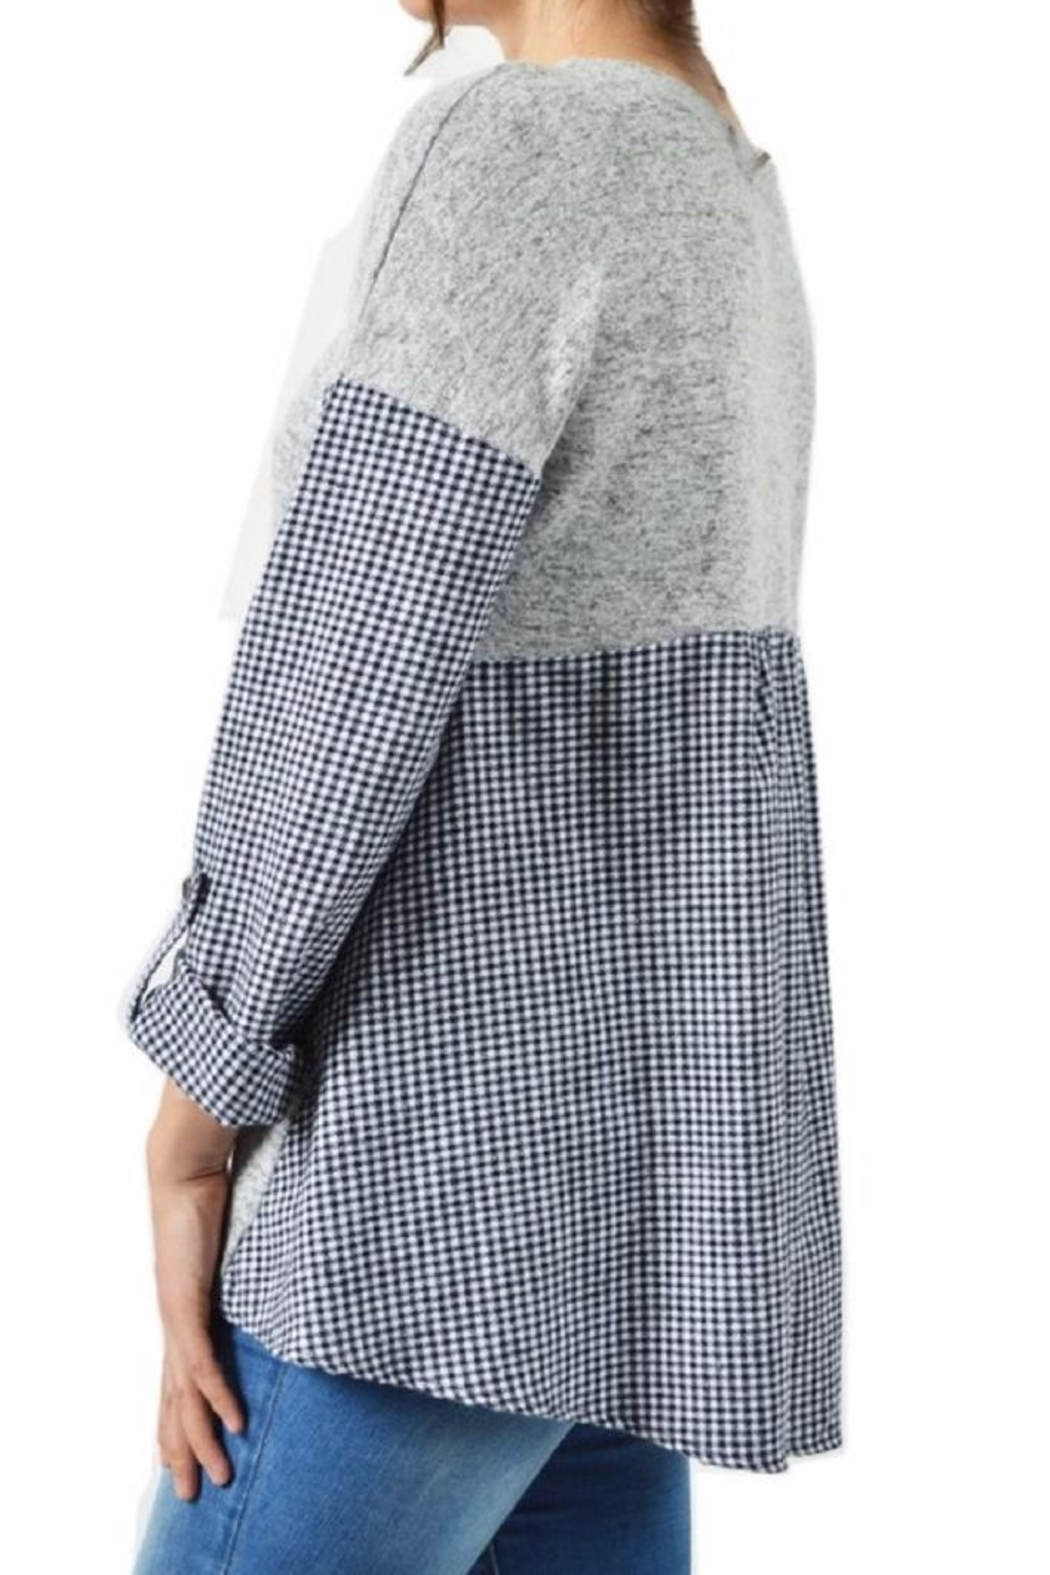 Potter's Pot Layered Check Top - Back Cropped Image